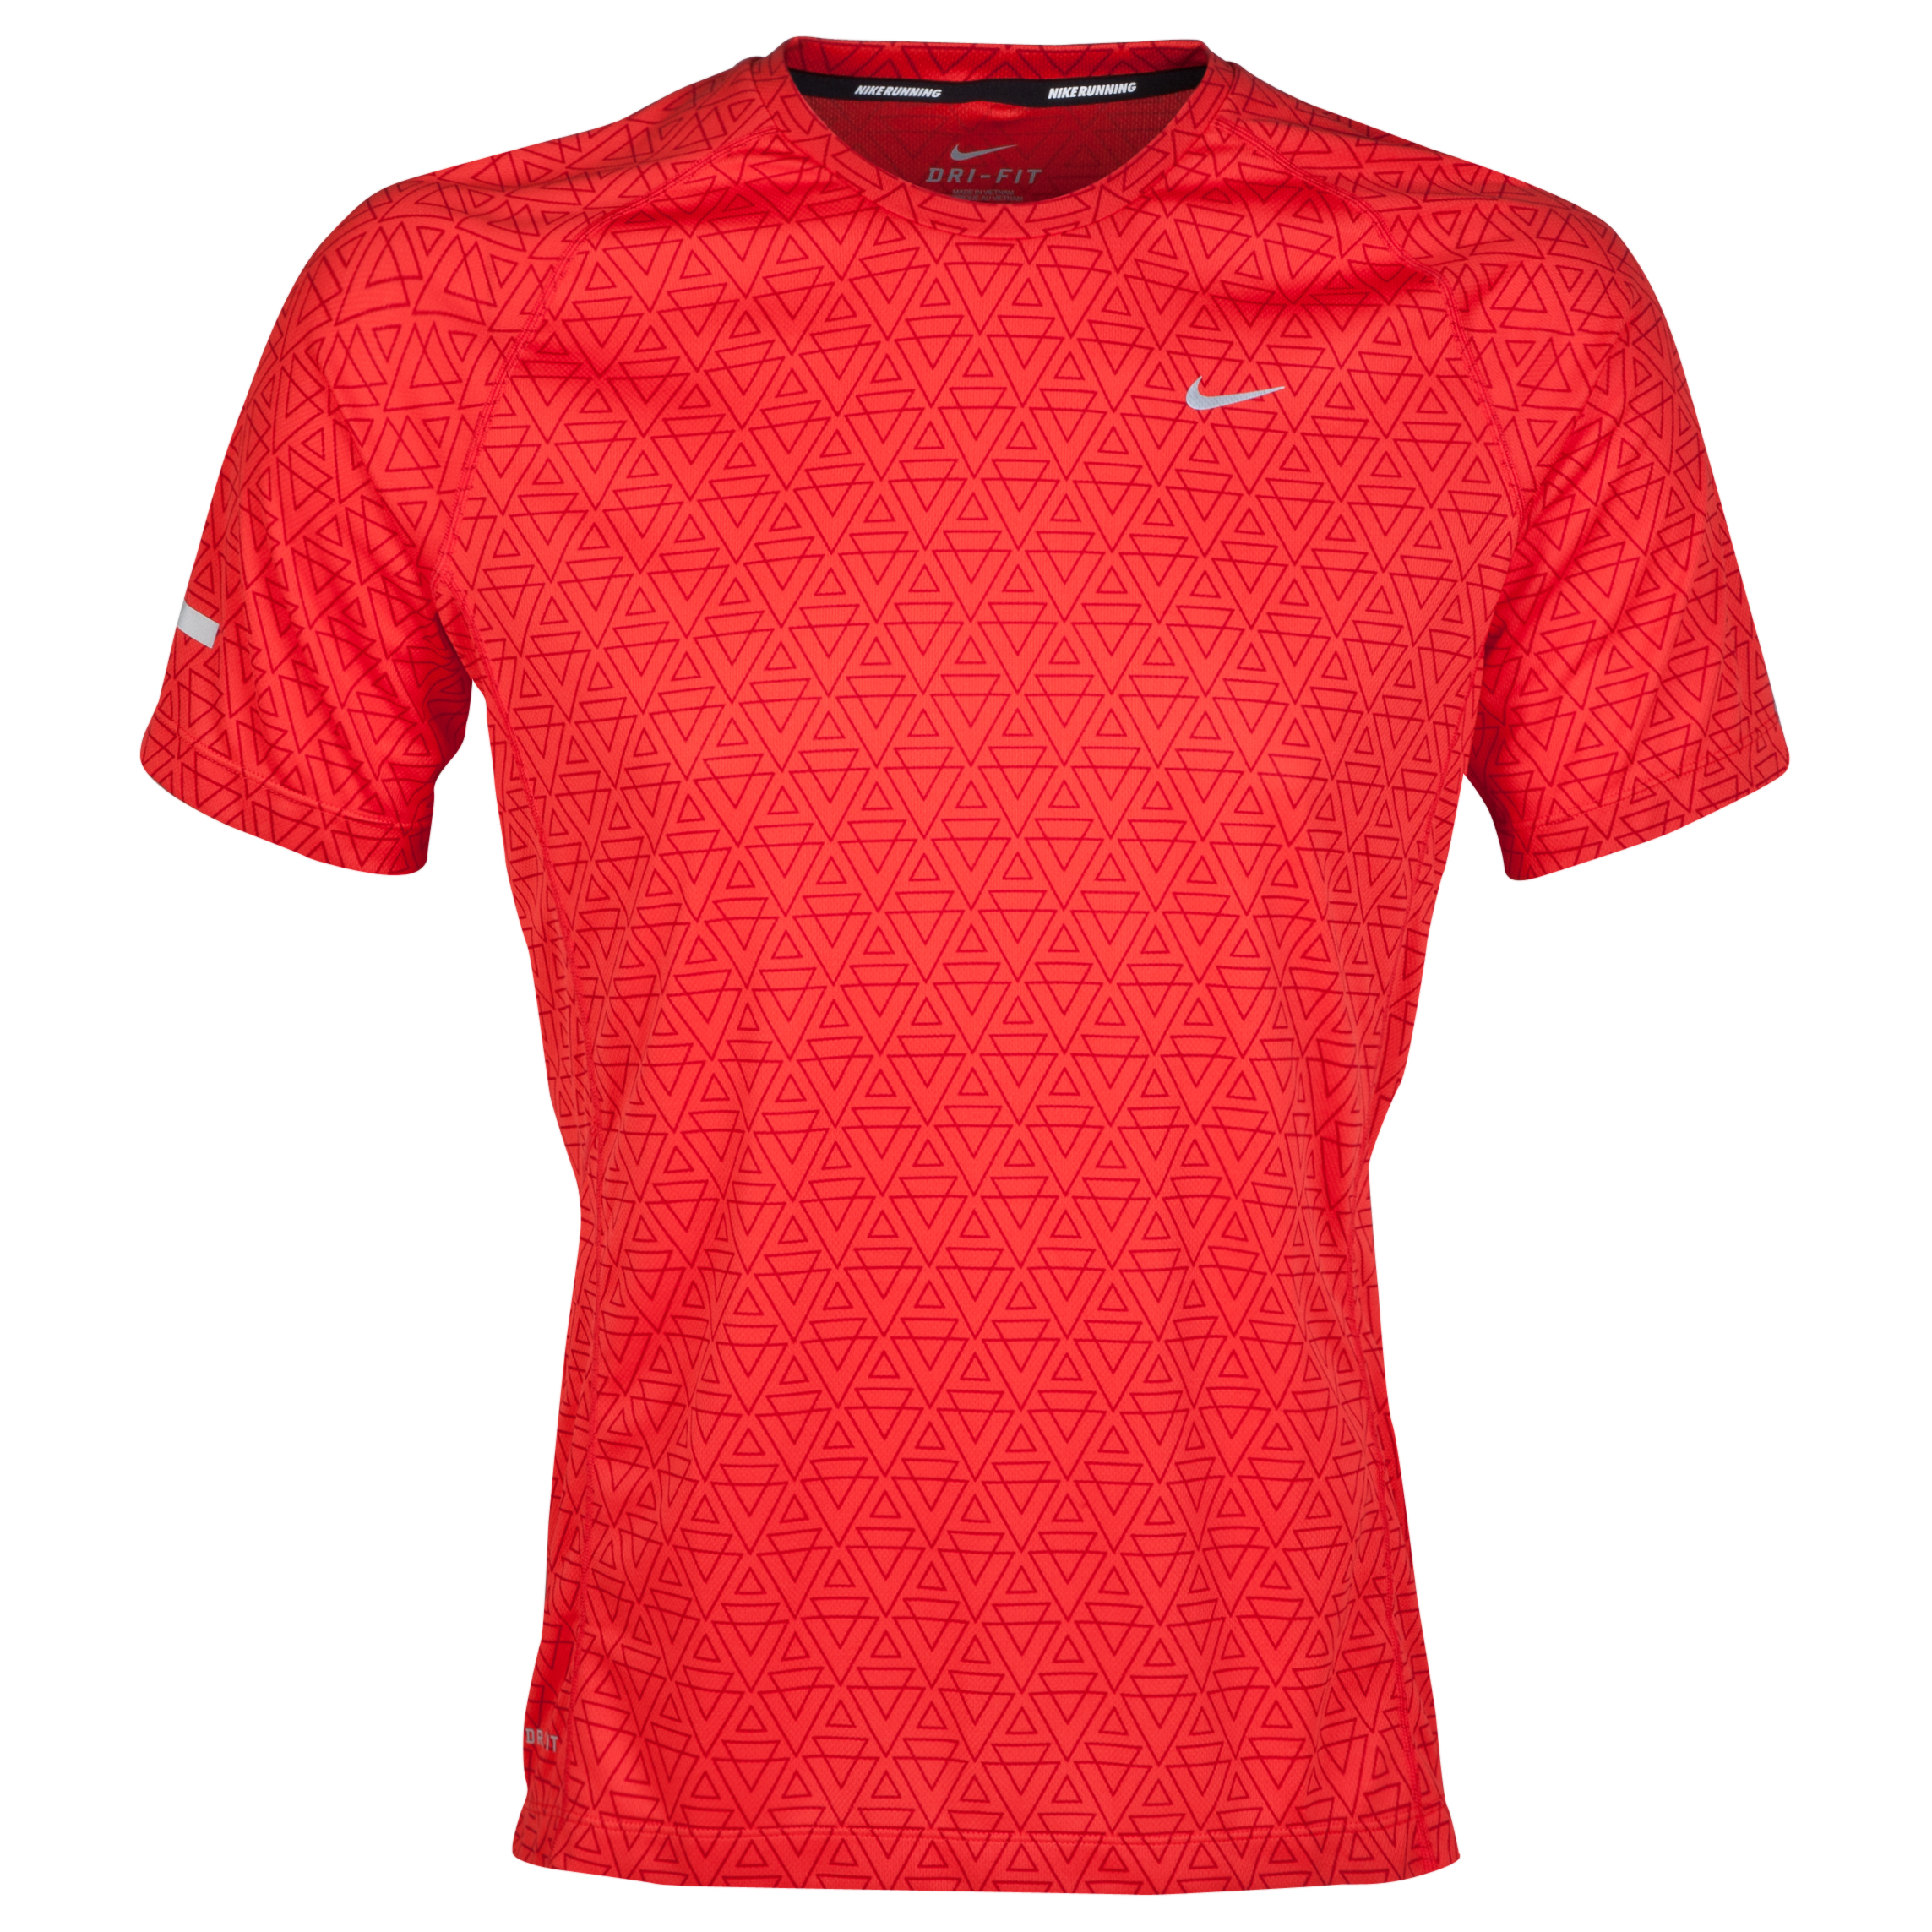 Nike Printed Miler T-Shirt Red